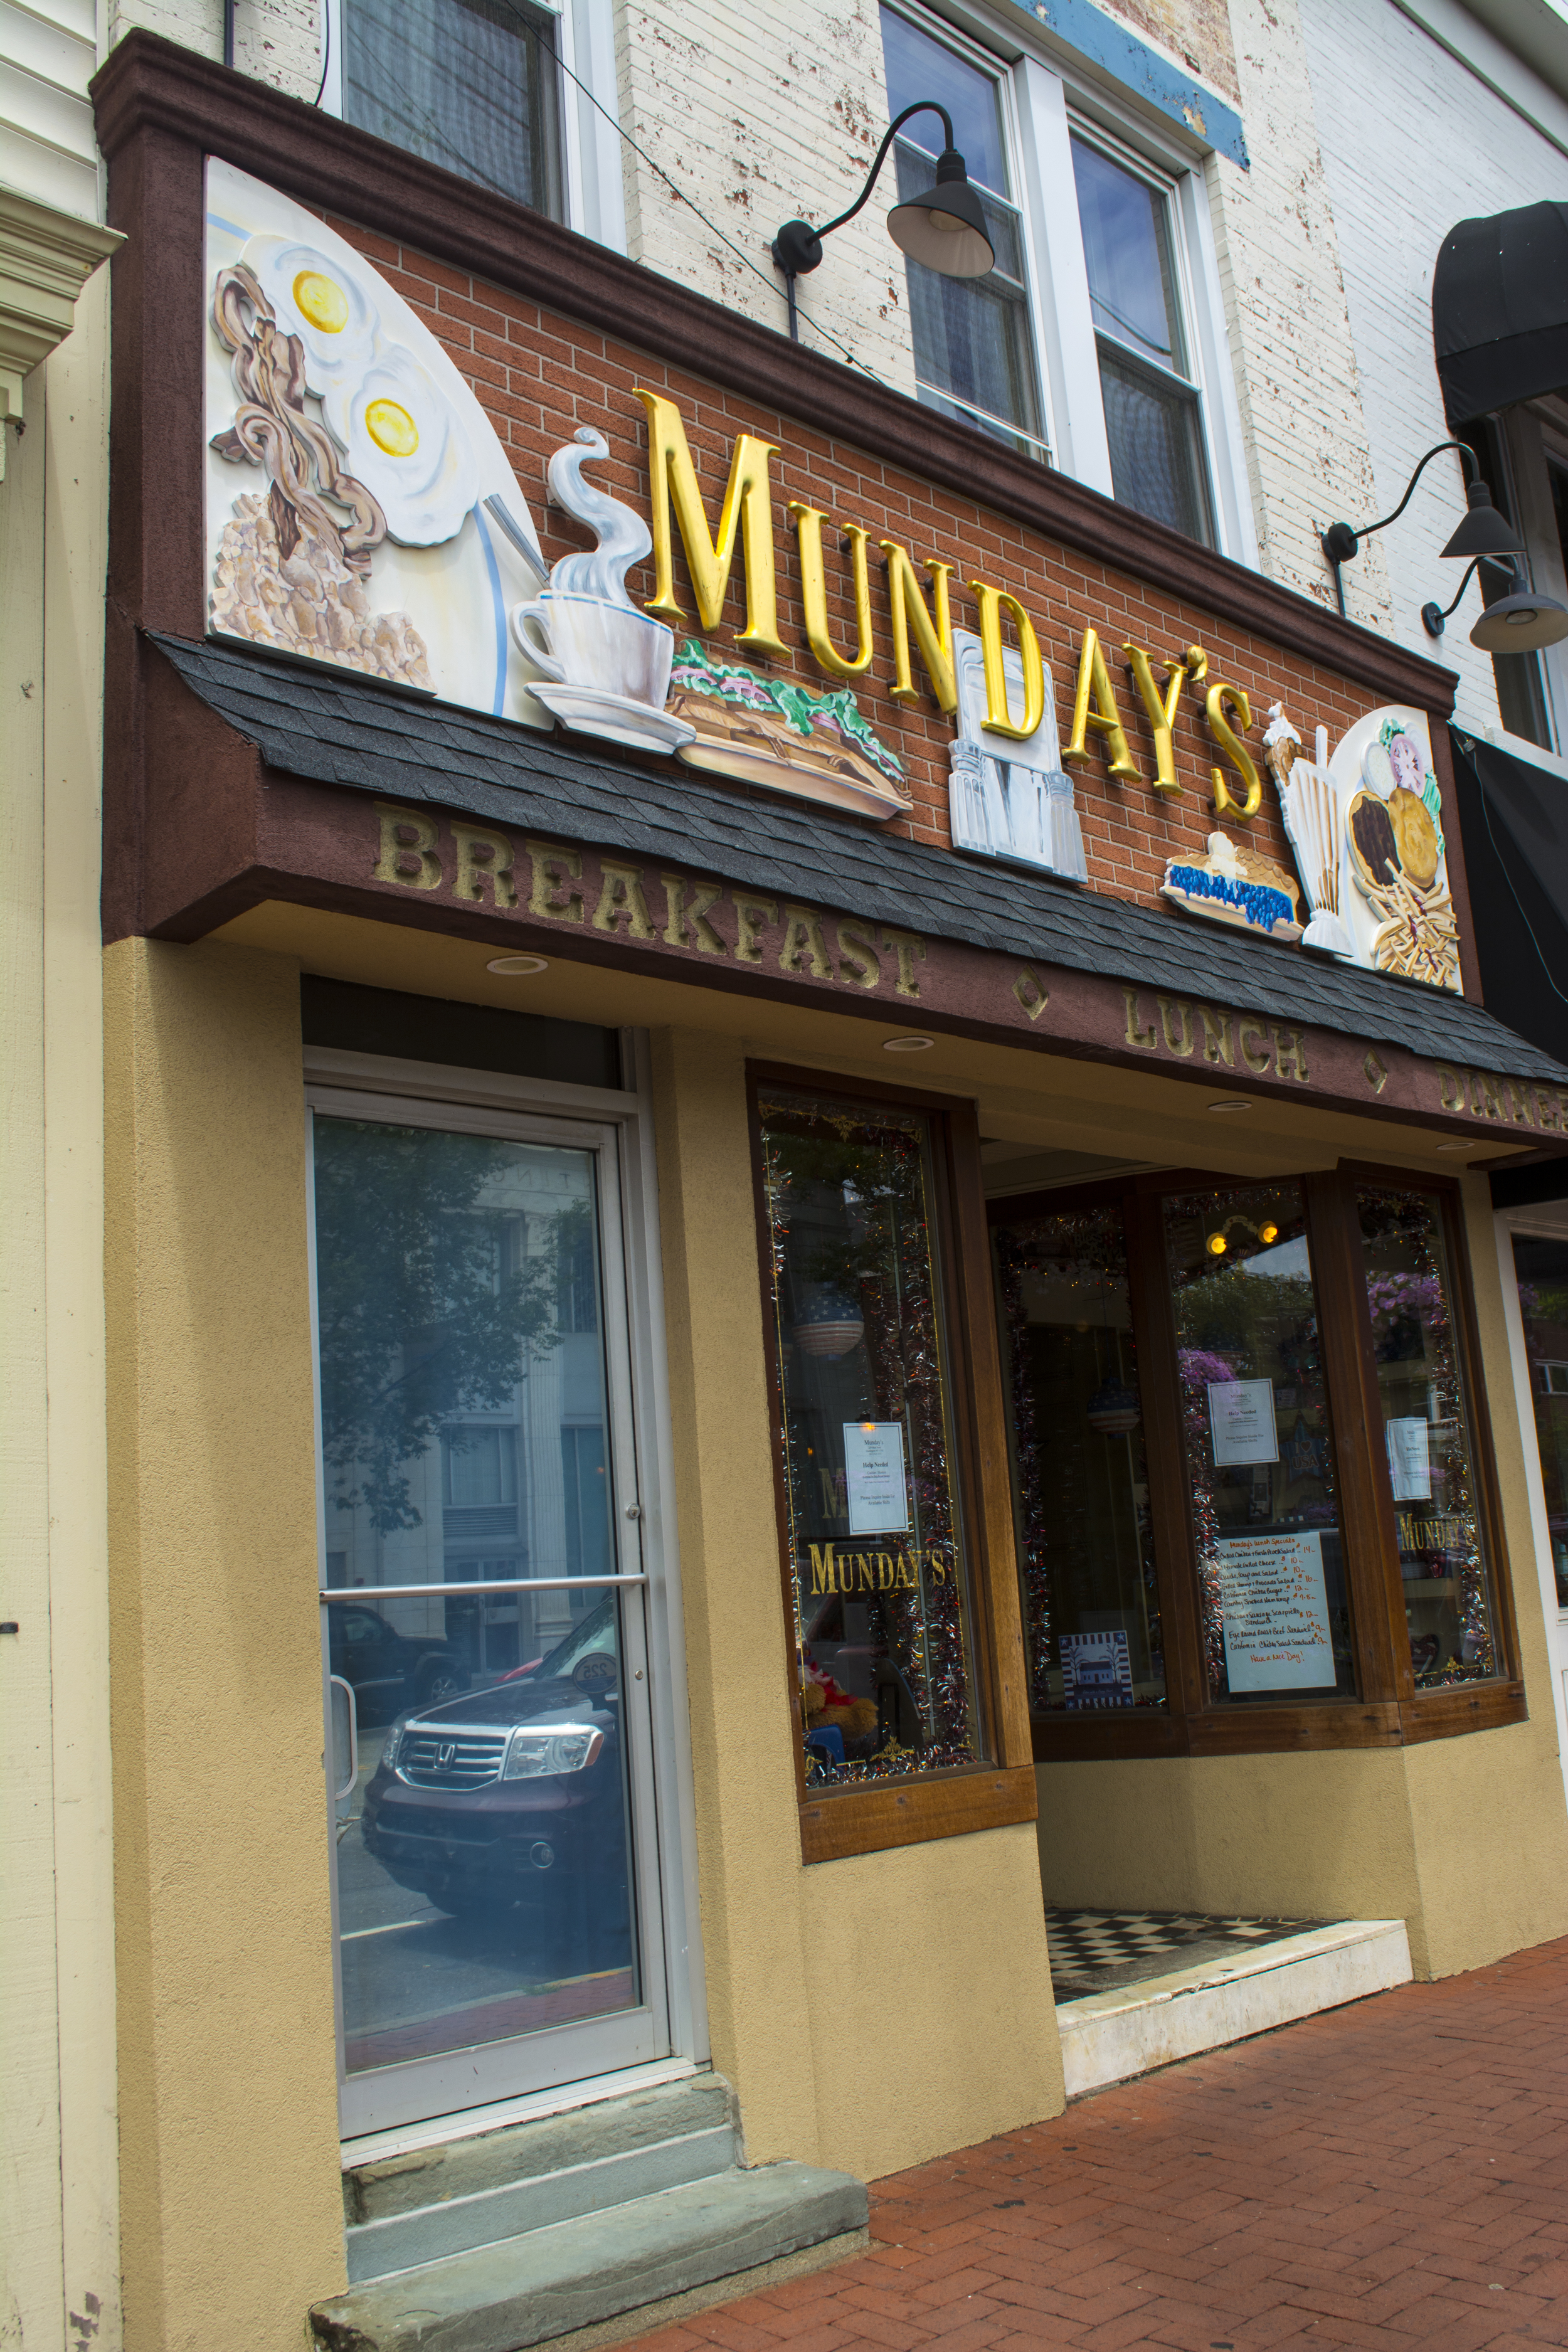 A distinct '60s diner-feel with plenty of tables, booths and seats at the counter, not to mention friendly faces are found at Munday's in Huntington village.